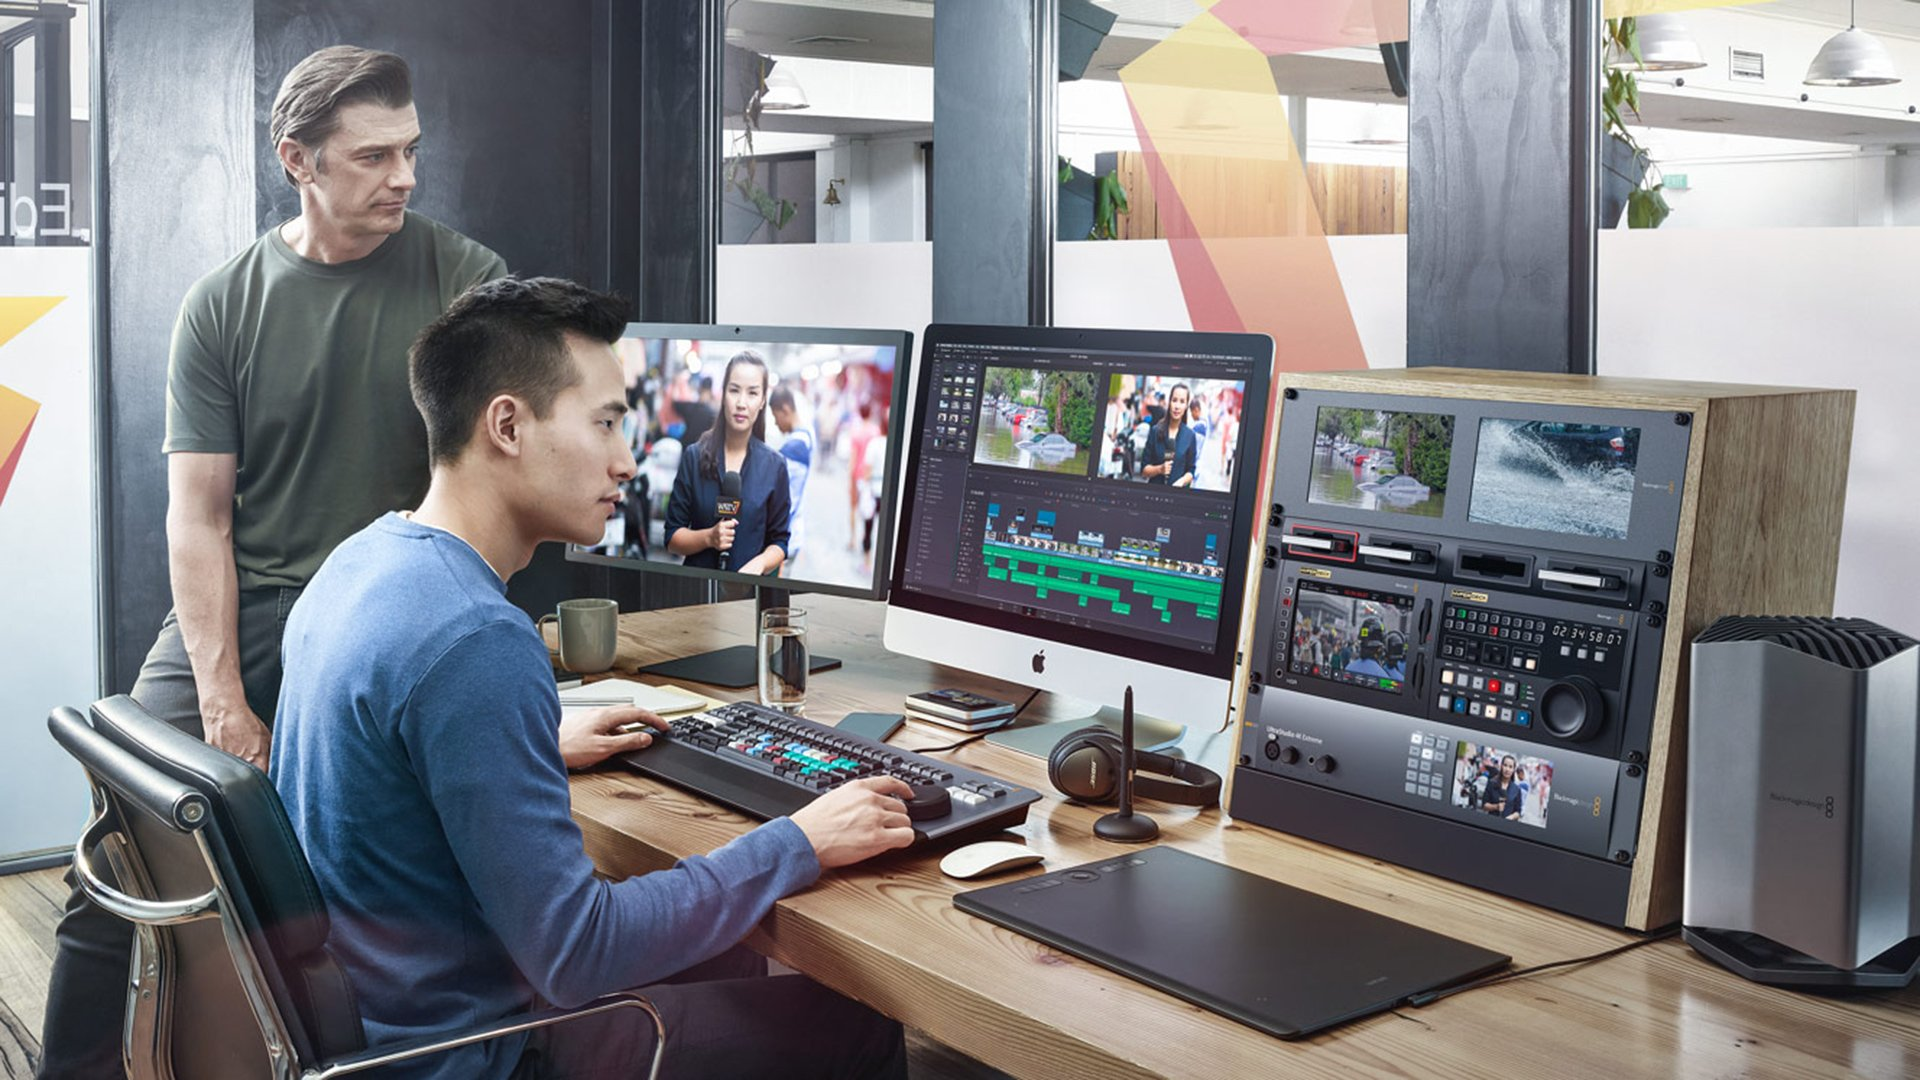 DaVinci Resolve 16 Blackmagic Design